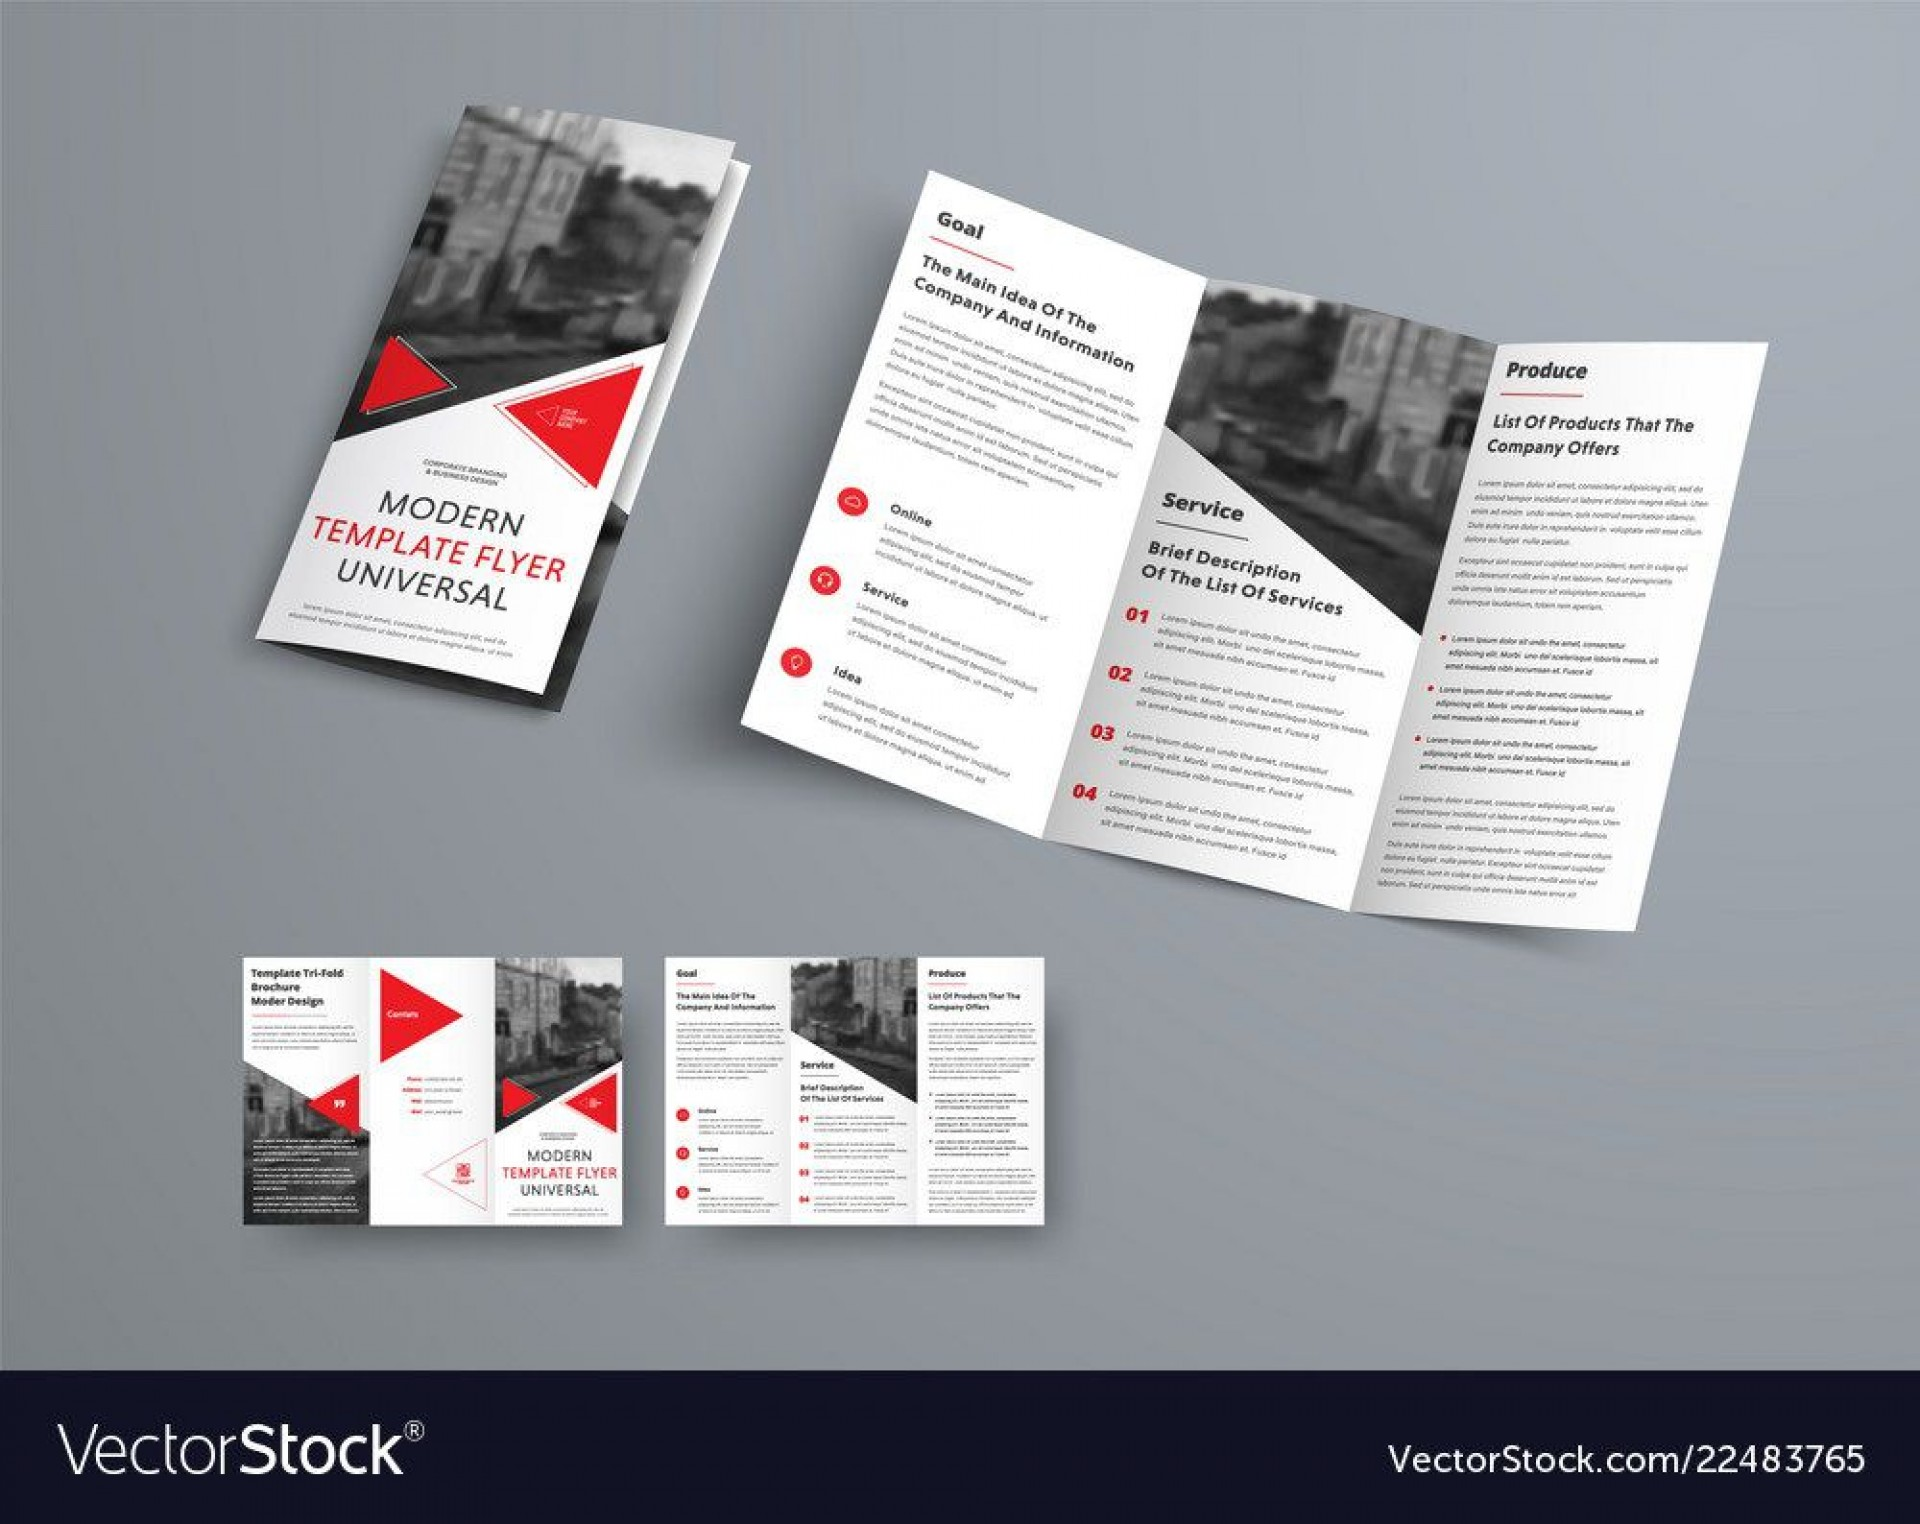 008 Remarkable 3 Fold Brochure Template Inspiration  Templates For Free1920